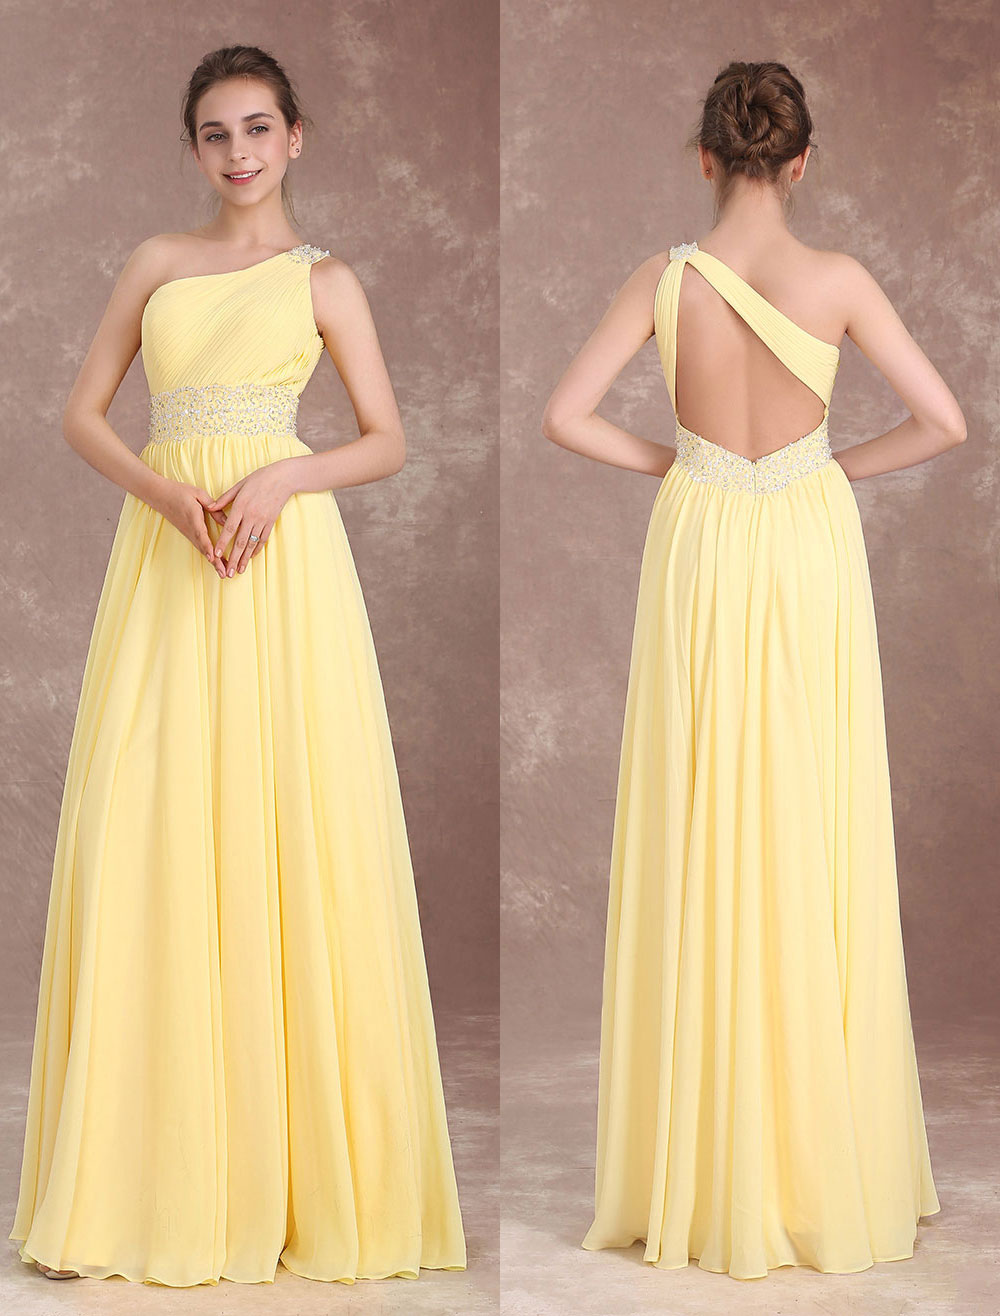 Long Bridesmaid Dresses Daffodil One Shoulder Prom Dress Chiffon Beading Back Design Floor Length Wedding Party Dress